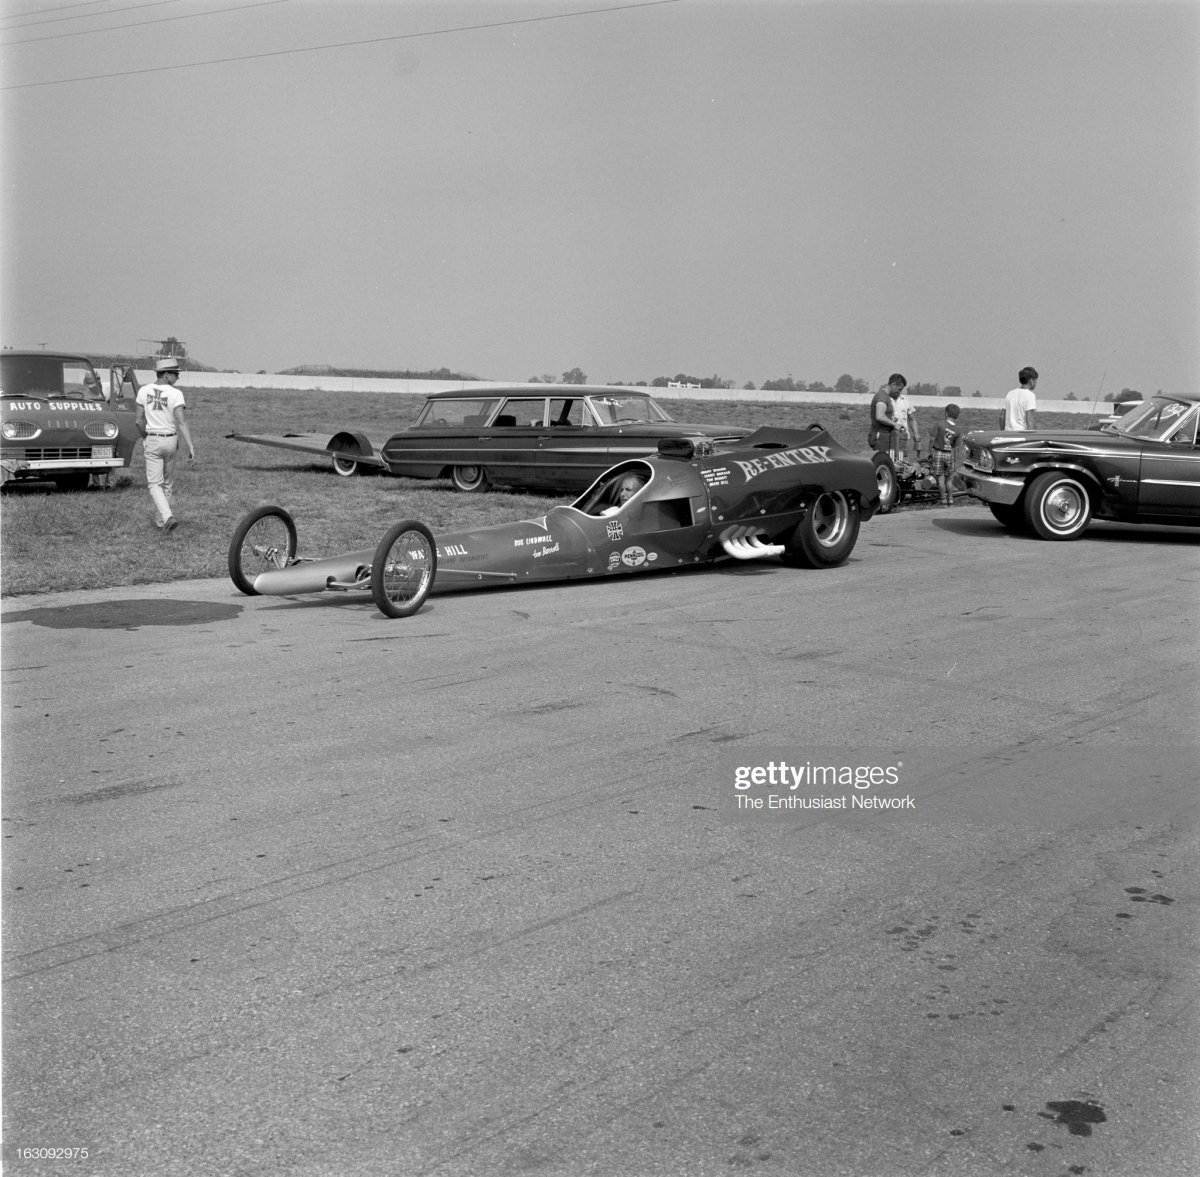 NHRA Nationals Drag Races - Indianapolis. The Re-Entry streamliner.jpg